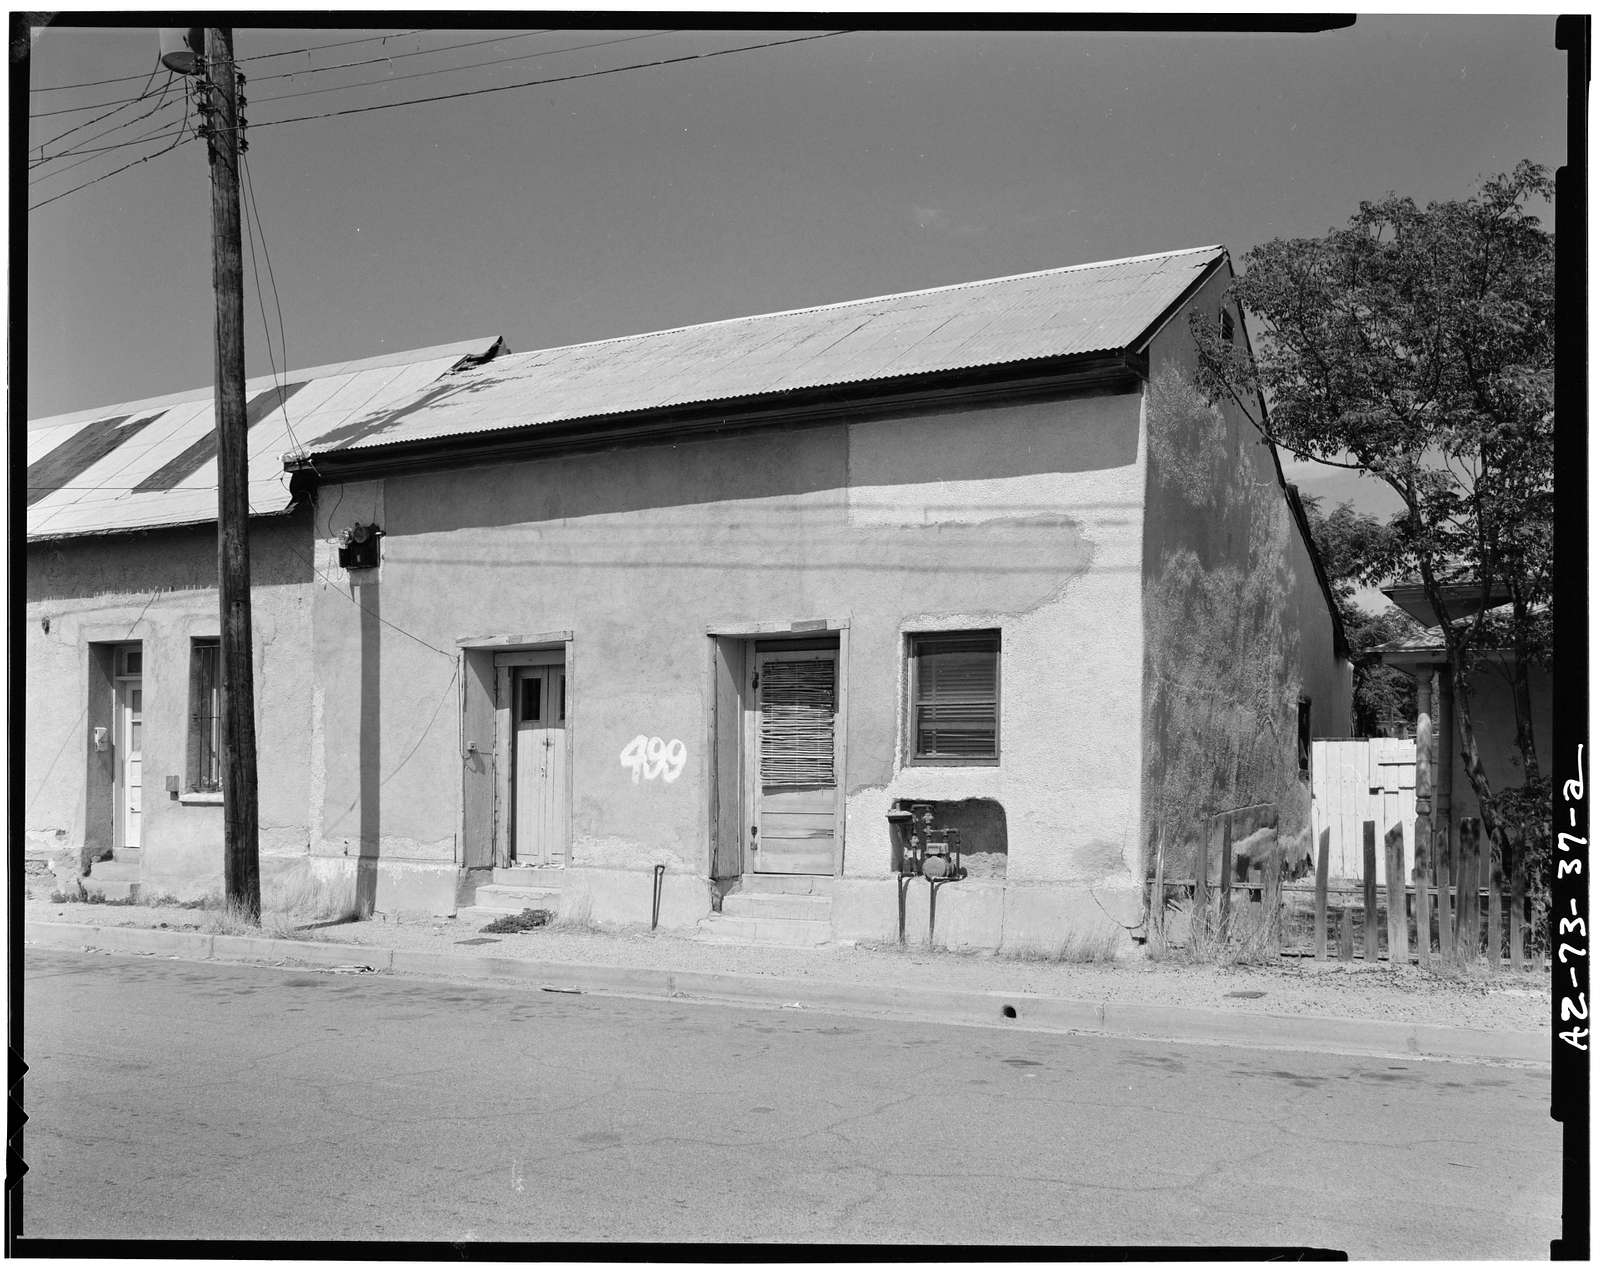 Munoz House, 499-501 South Meyer Avenue, Tucson, Pima County, AZ